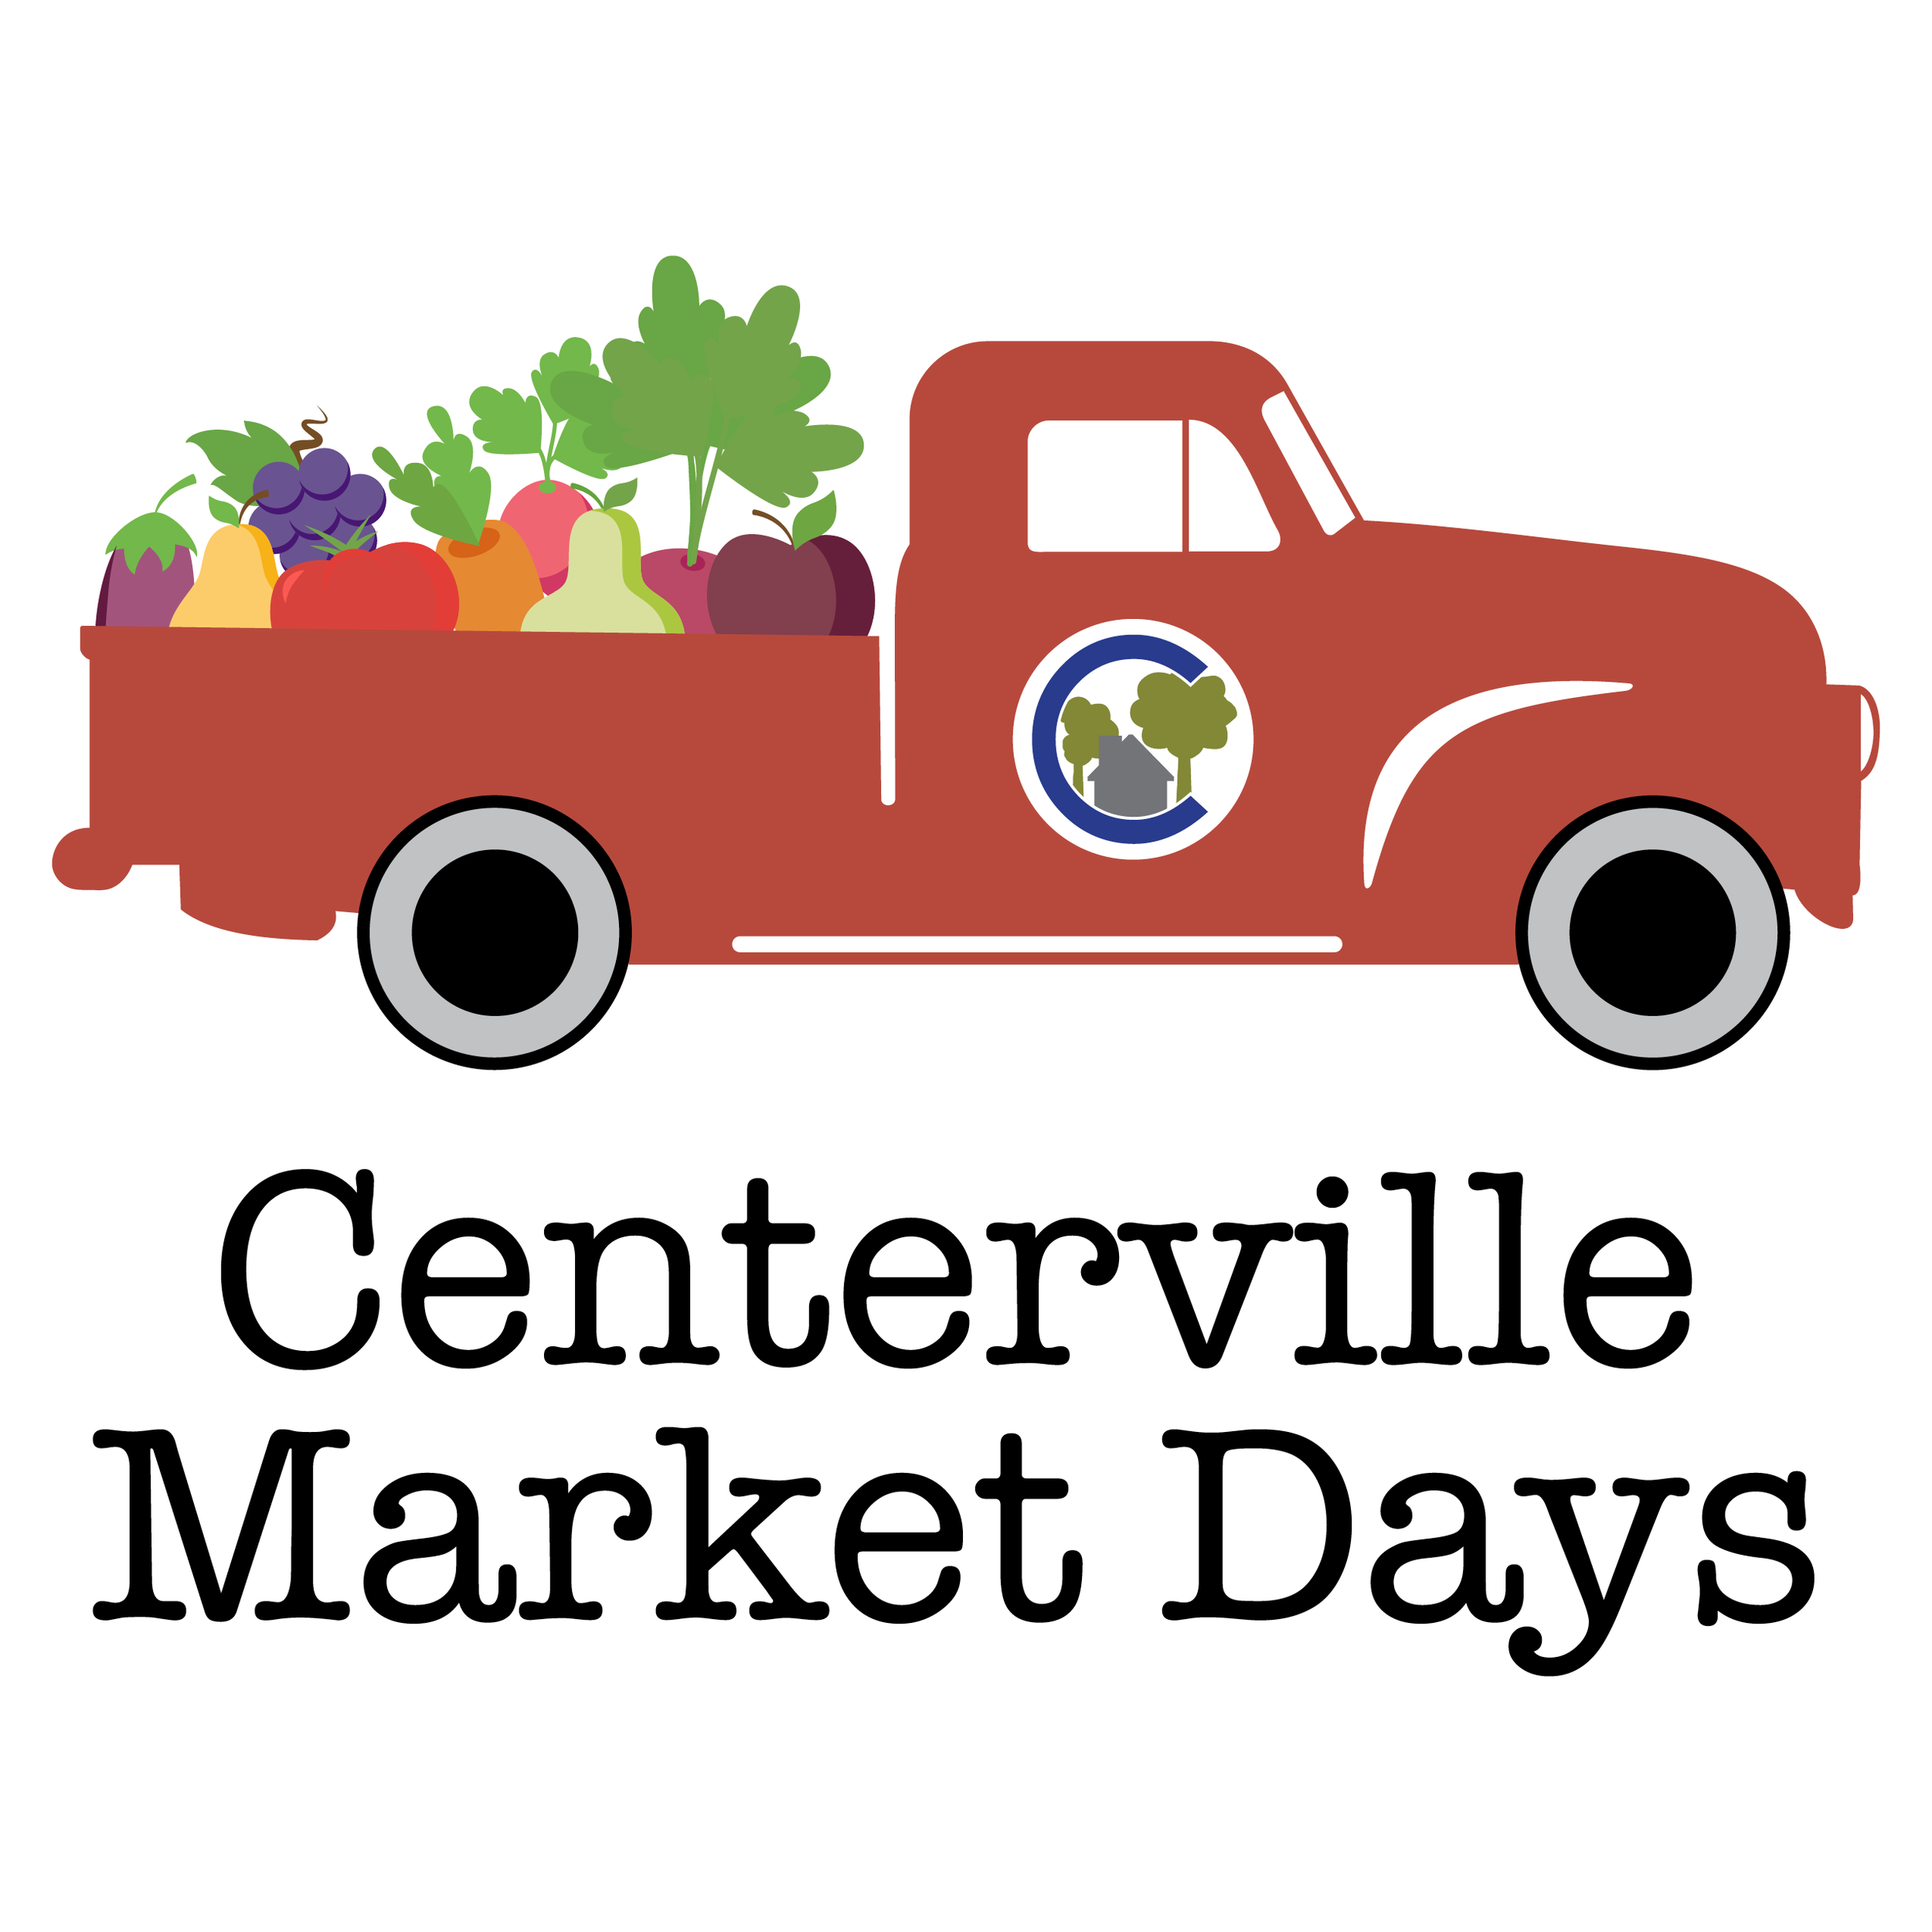 Centerville Farmers Market:   9am-1pm, March-October  892 S. Main Street (just north of the intersection of State Route 48 & Spring Valley Road)  Contact:  khogan@centerville.mgacoxmail.com